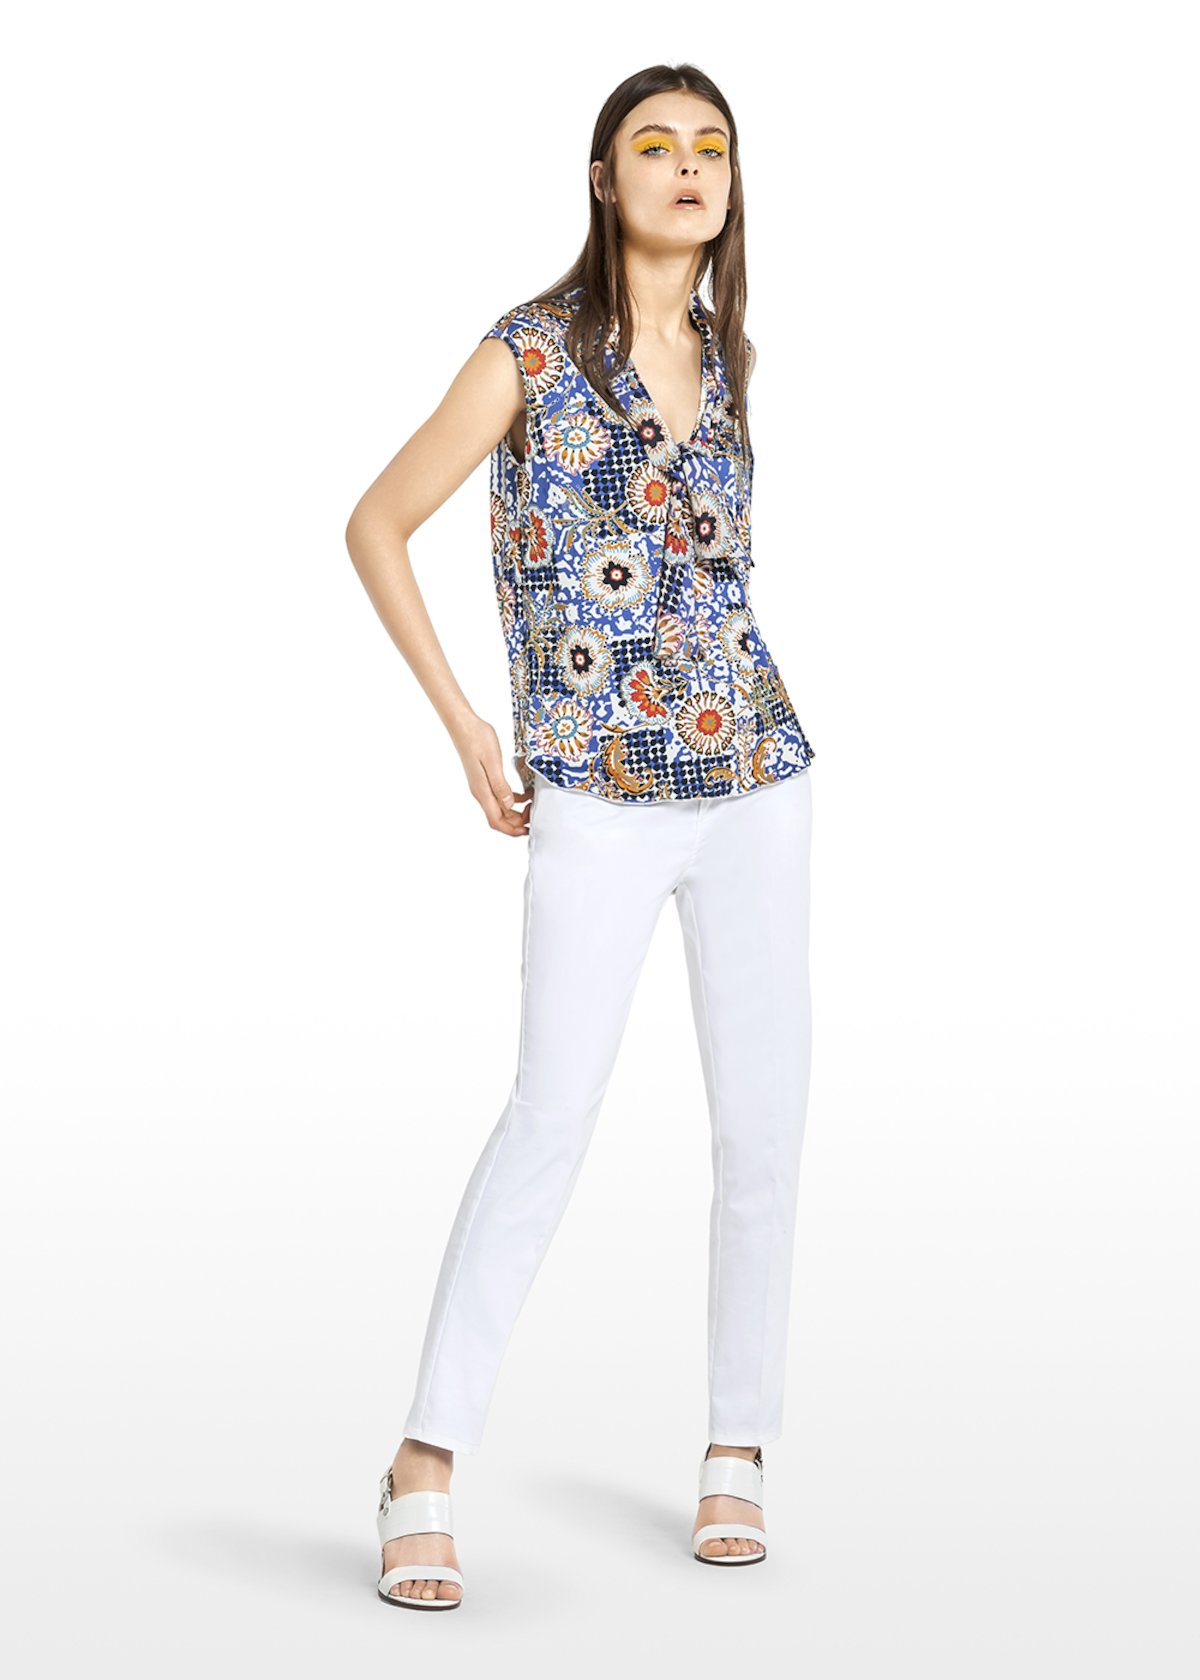 Top smanicato Taty stampa maioliche - Avion / White Fantasia - Donna - Immagine categoria